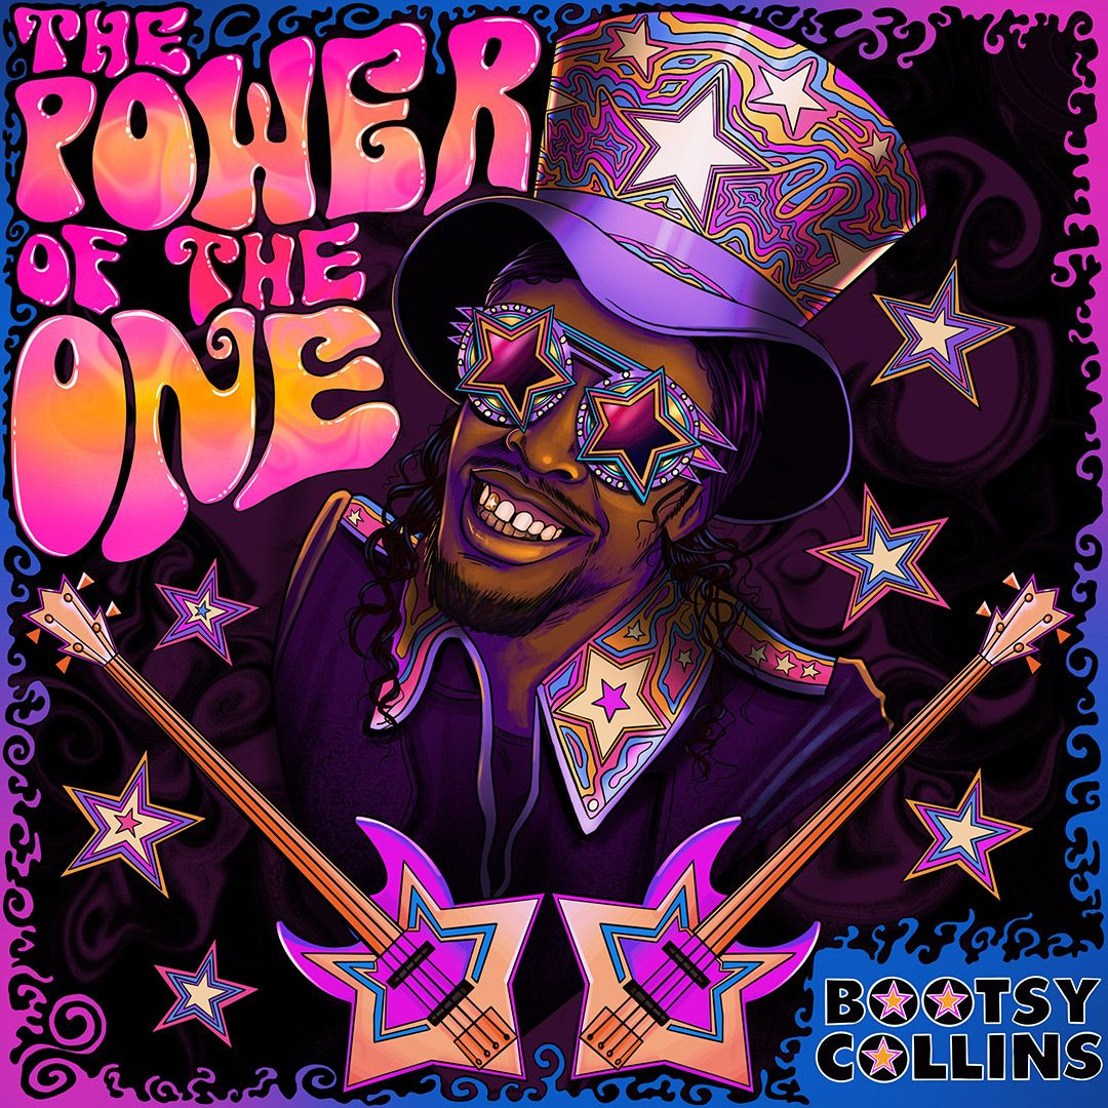 Sweetwater Studios' Ken Love on Mastering Bootsy Collins' 'The Power of One'